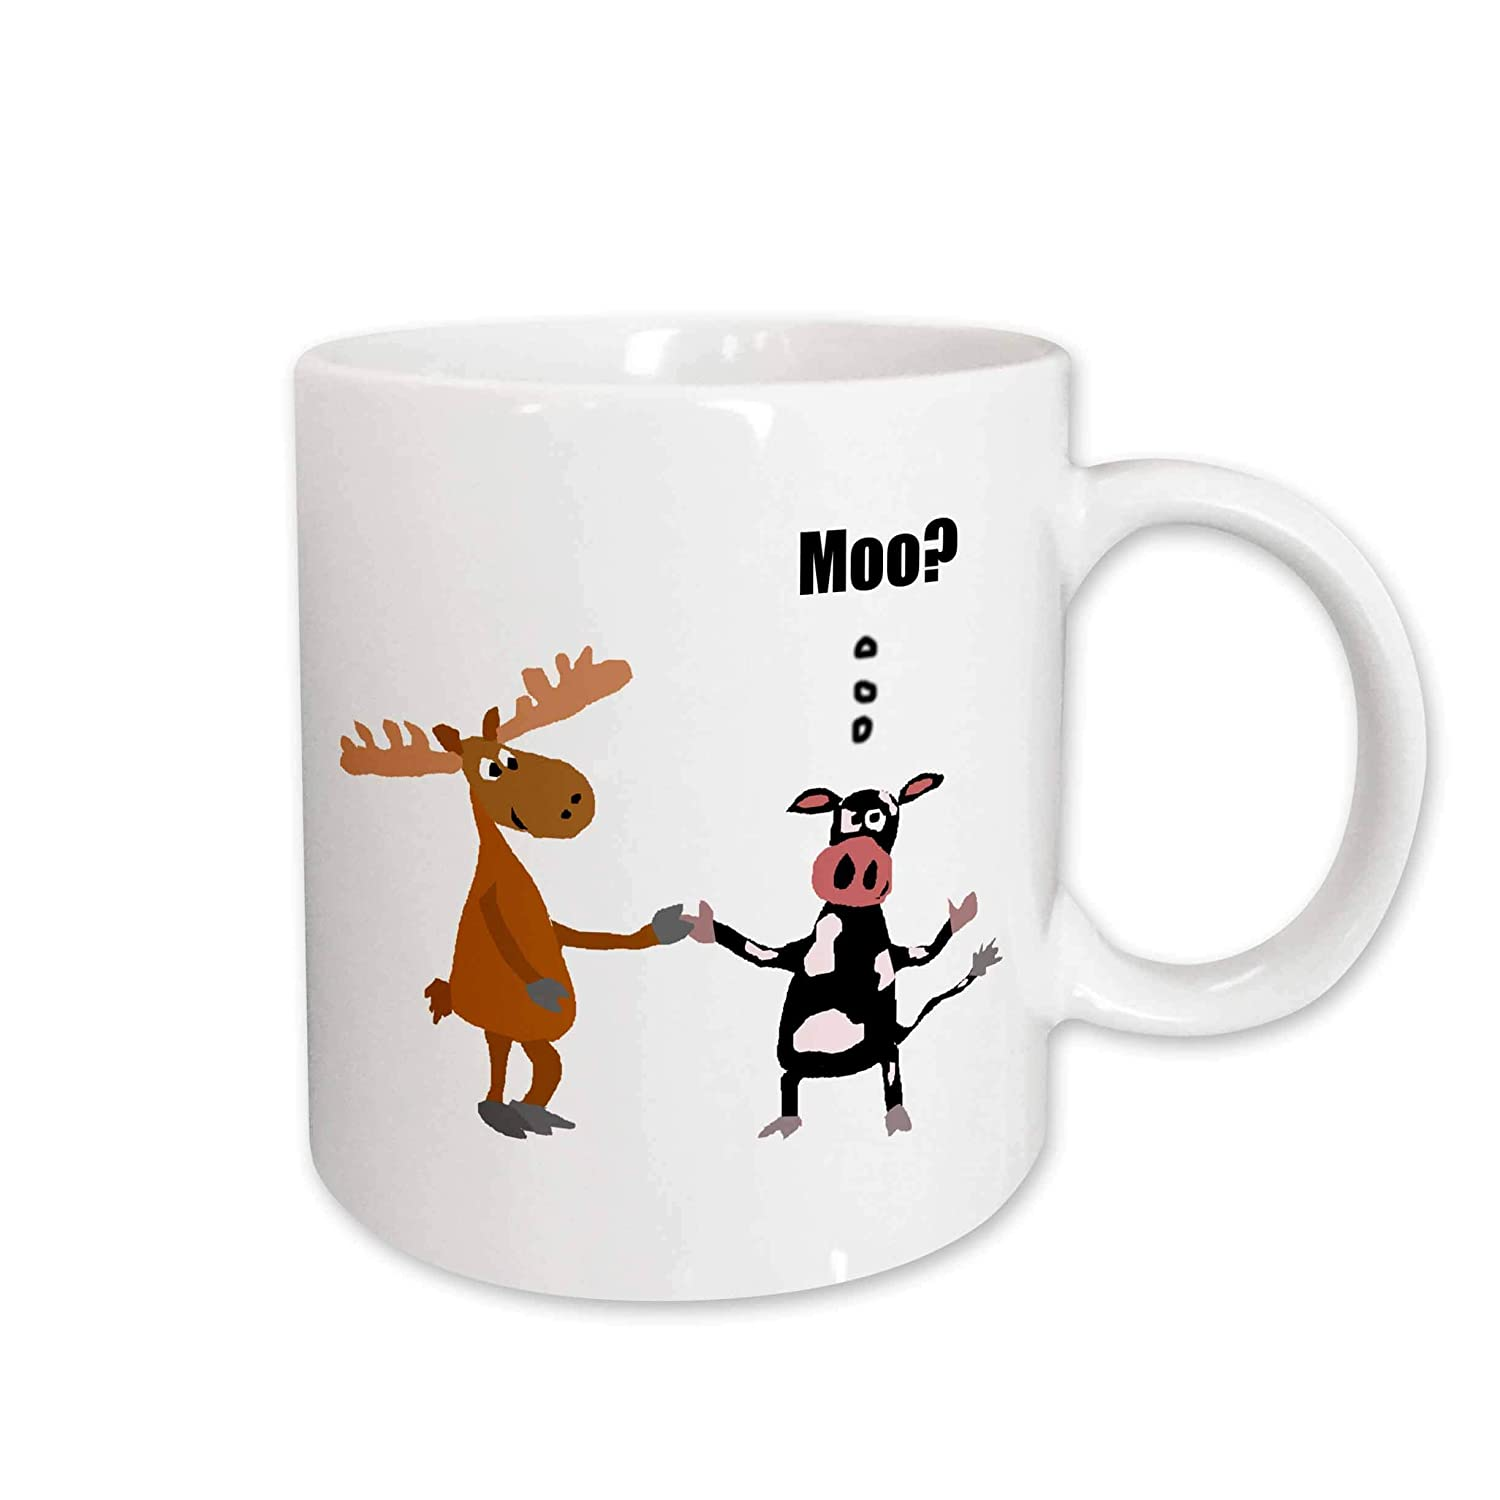 3D Rose 237250/_2Funny Black and White Cow Talking to Moose and says Moo Ceramic Mug 15 oz